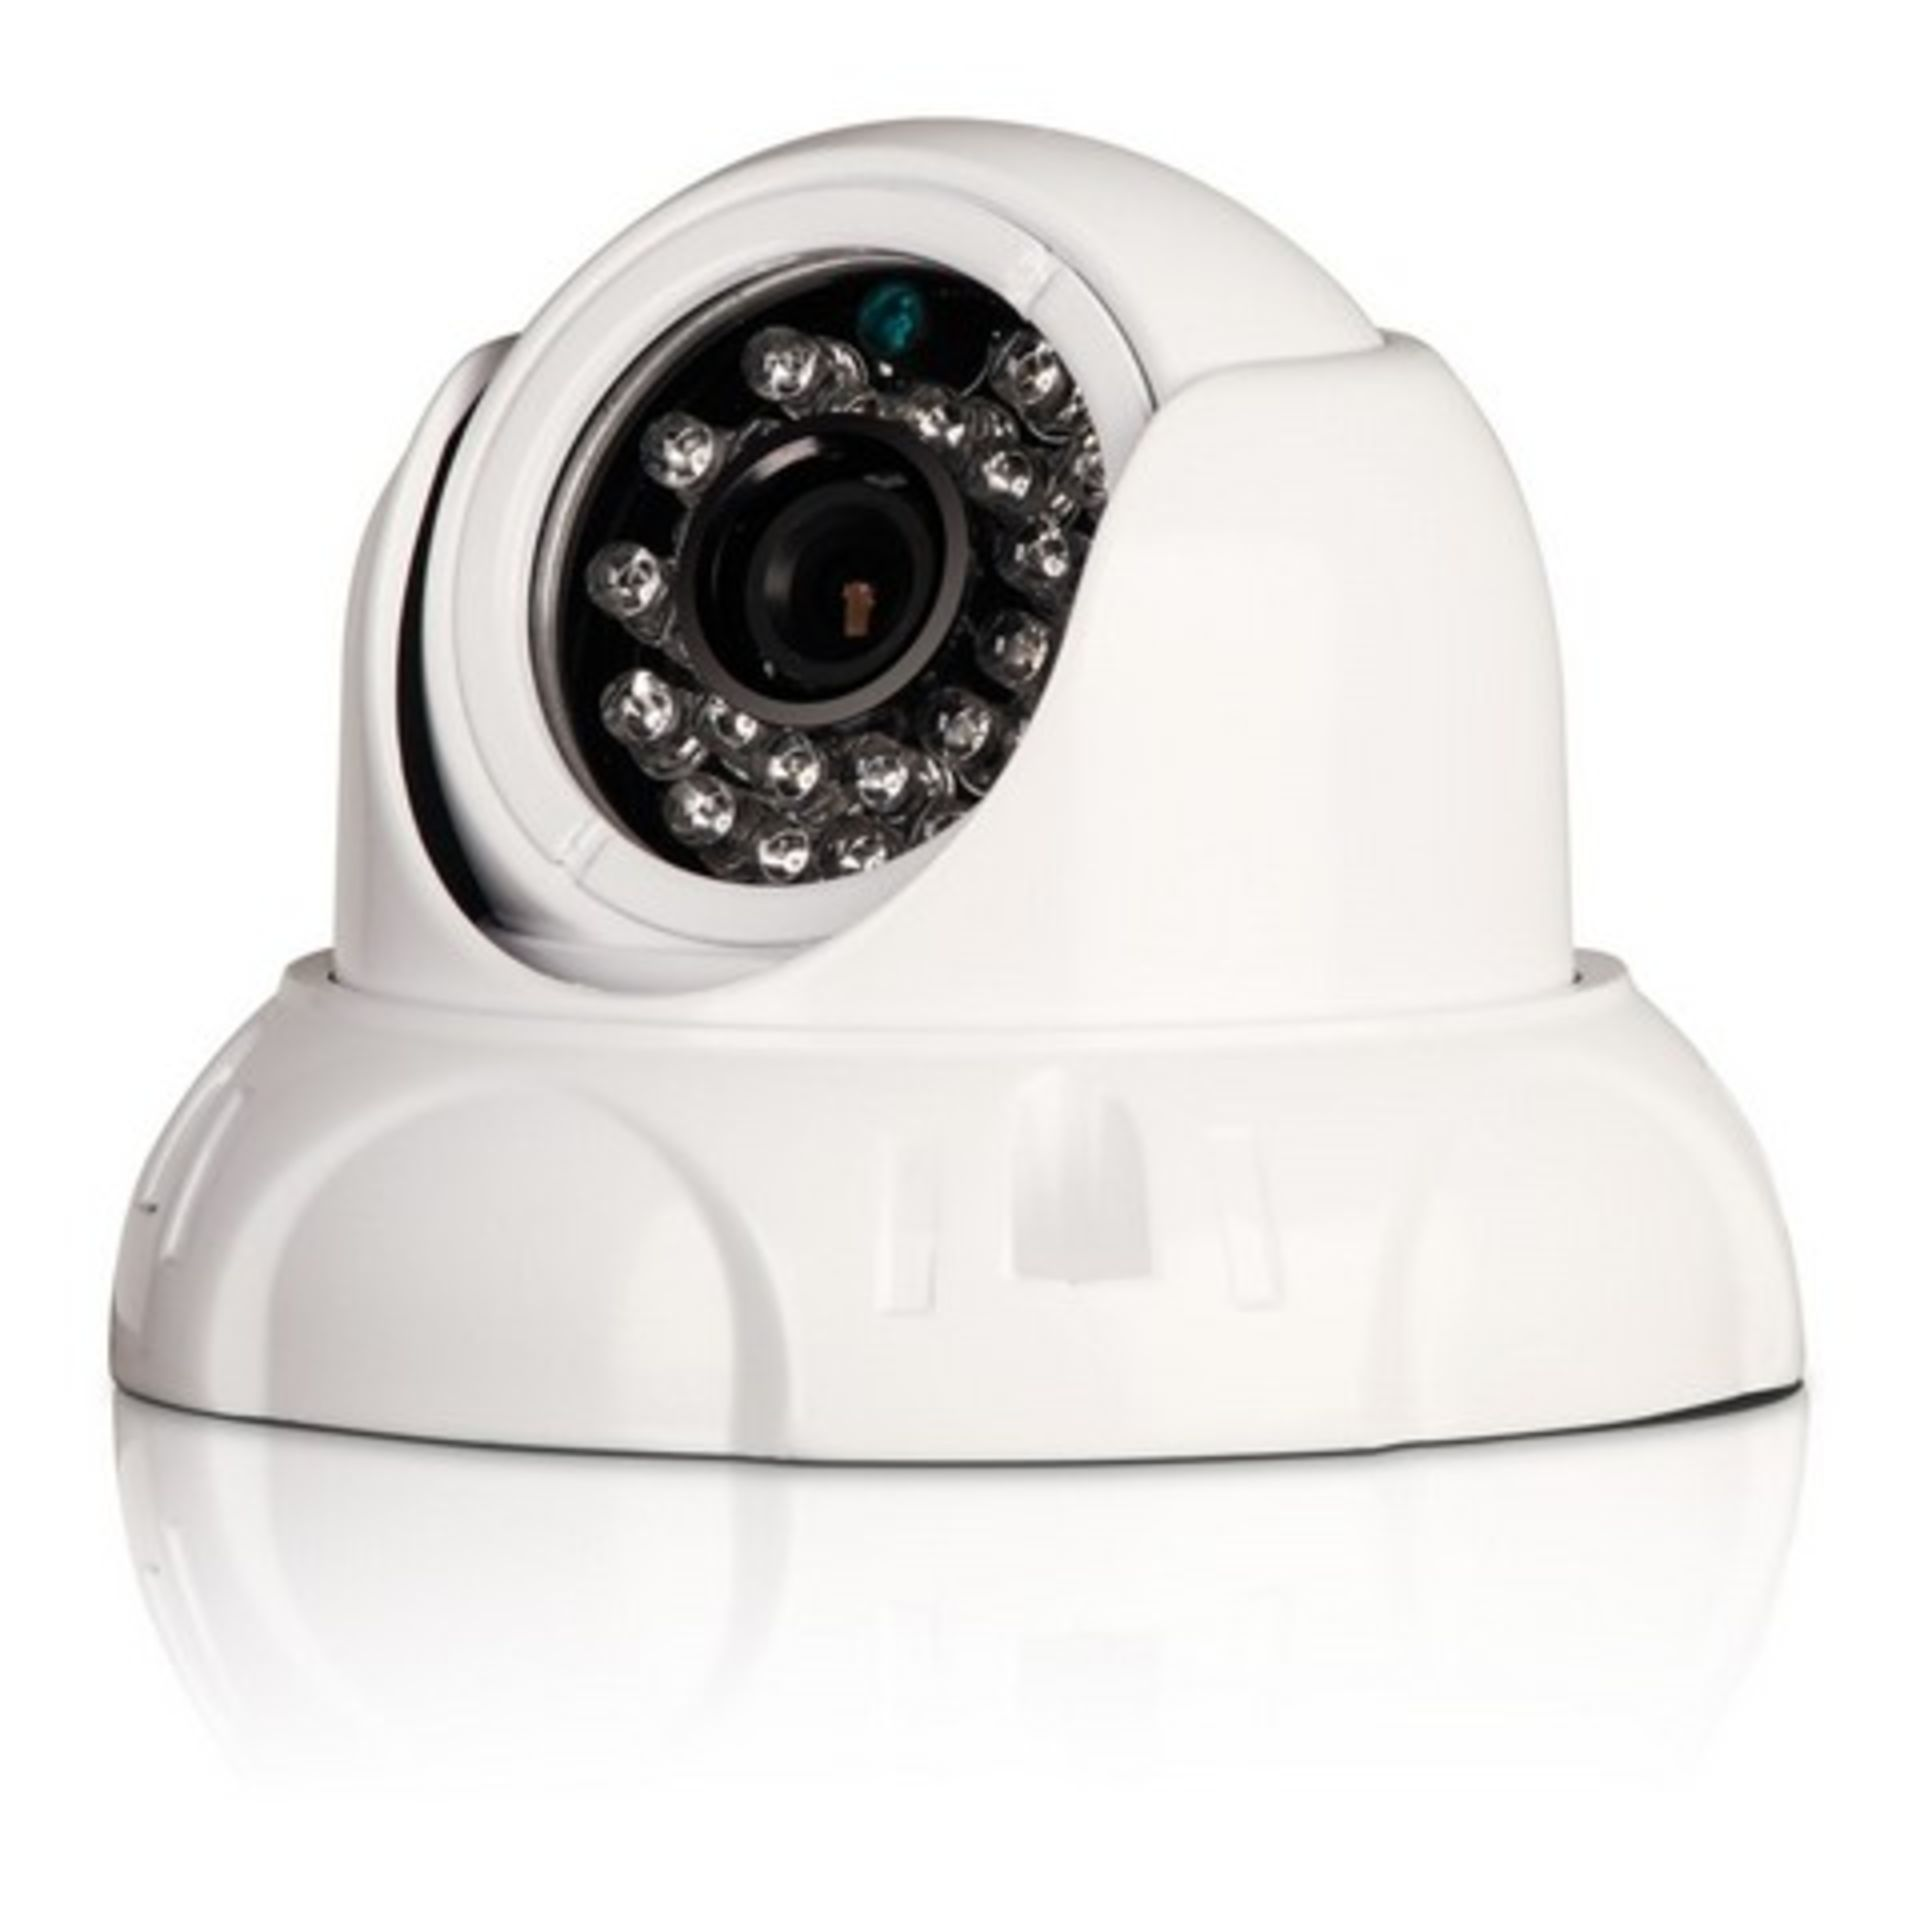 + VAT Brand New Swann C1736 Alpha Series Multi-Purpose Day And Night Dome Camera - 700TVL - IP67